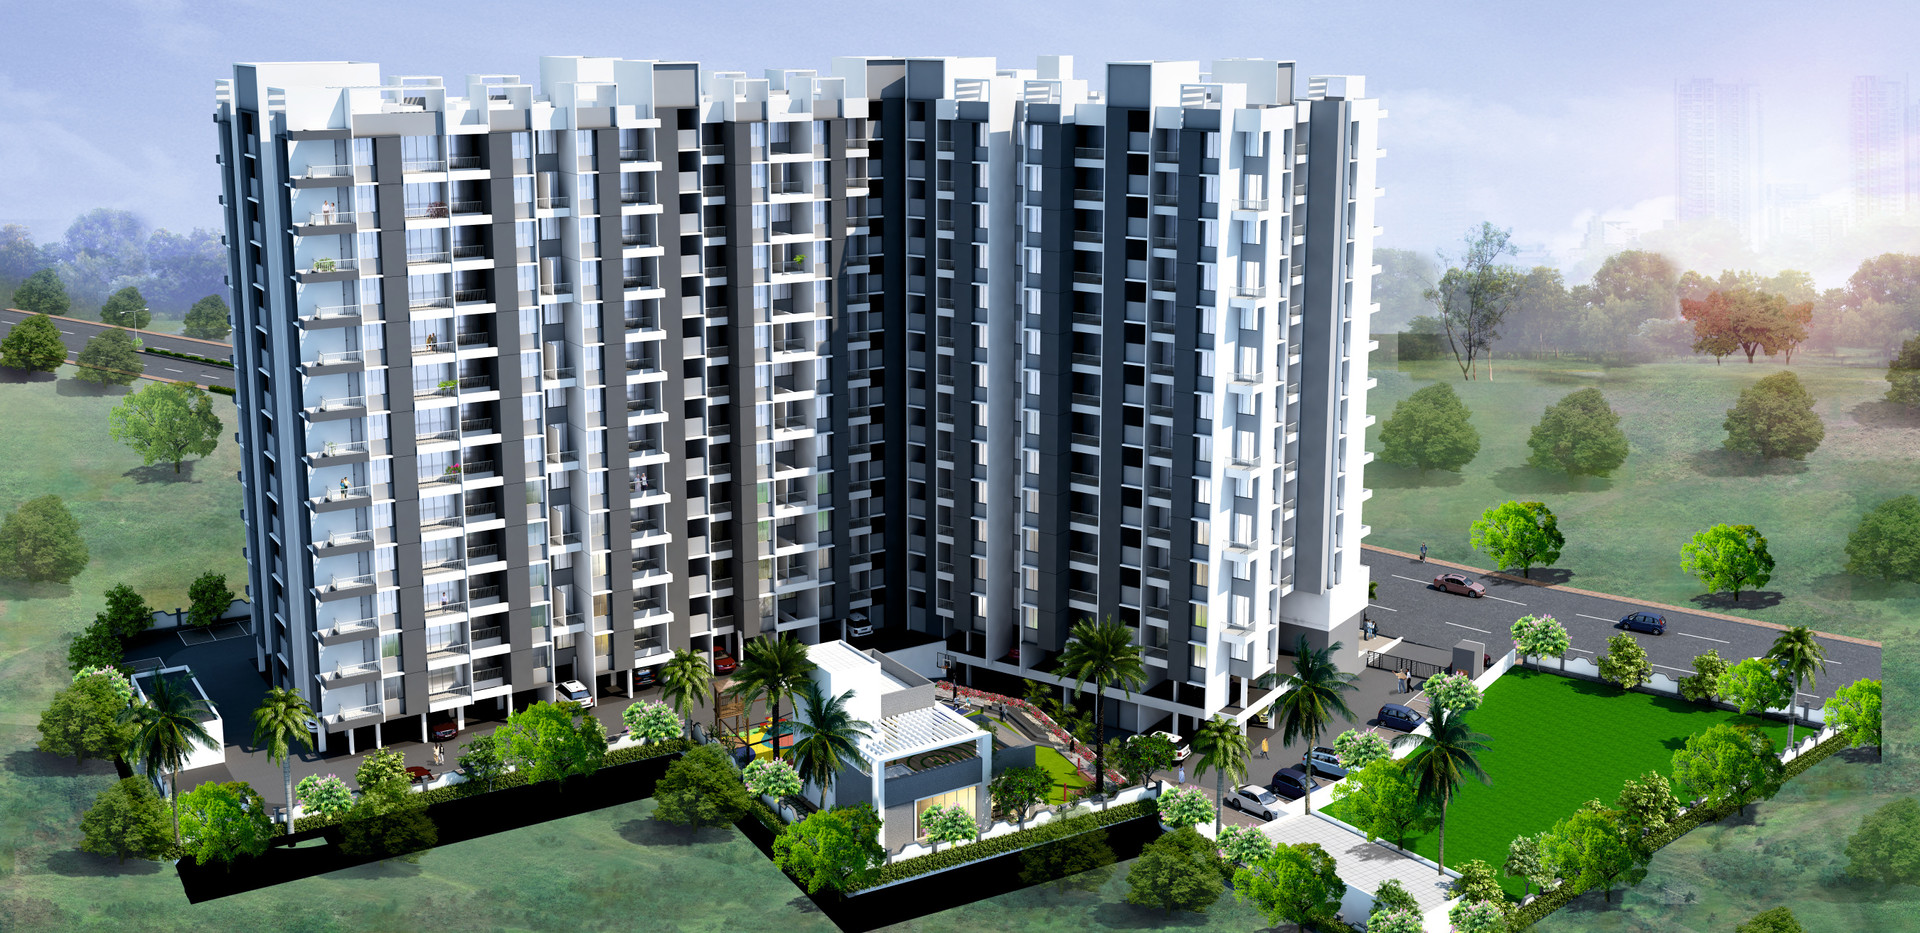 Yash Florencia Elevation Day View-Kondhwa